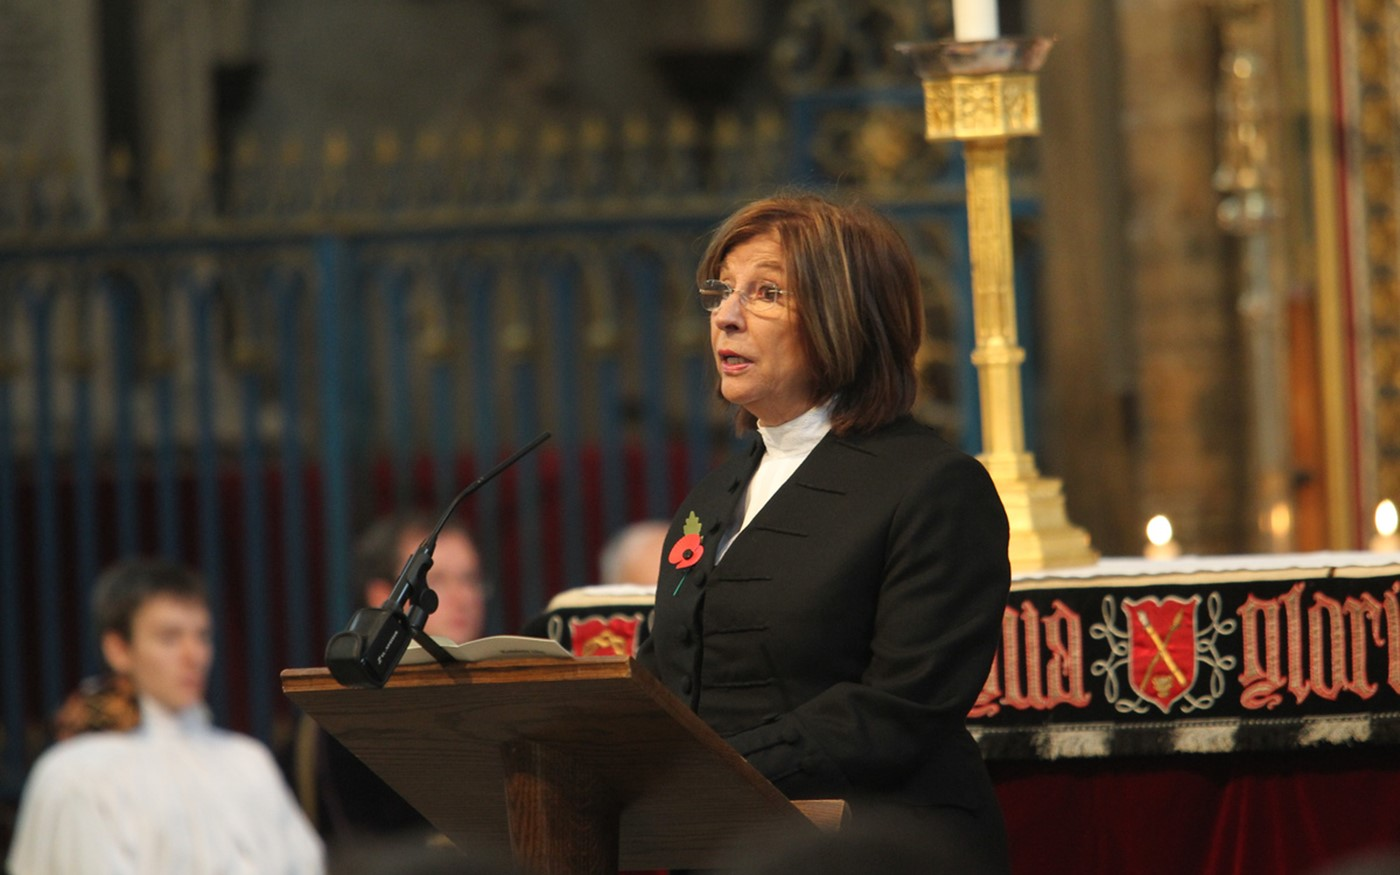 The Right Honourable The Baroness D'Souza, Lord Speaker read Revelation 21: 1-6